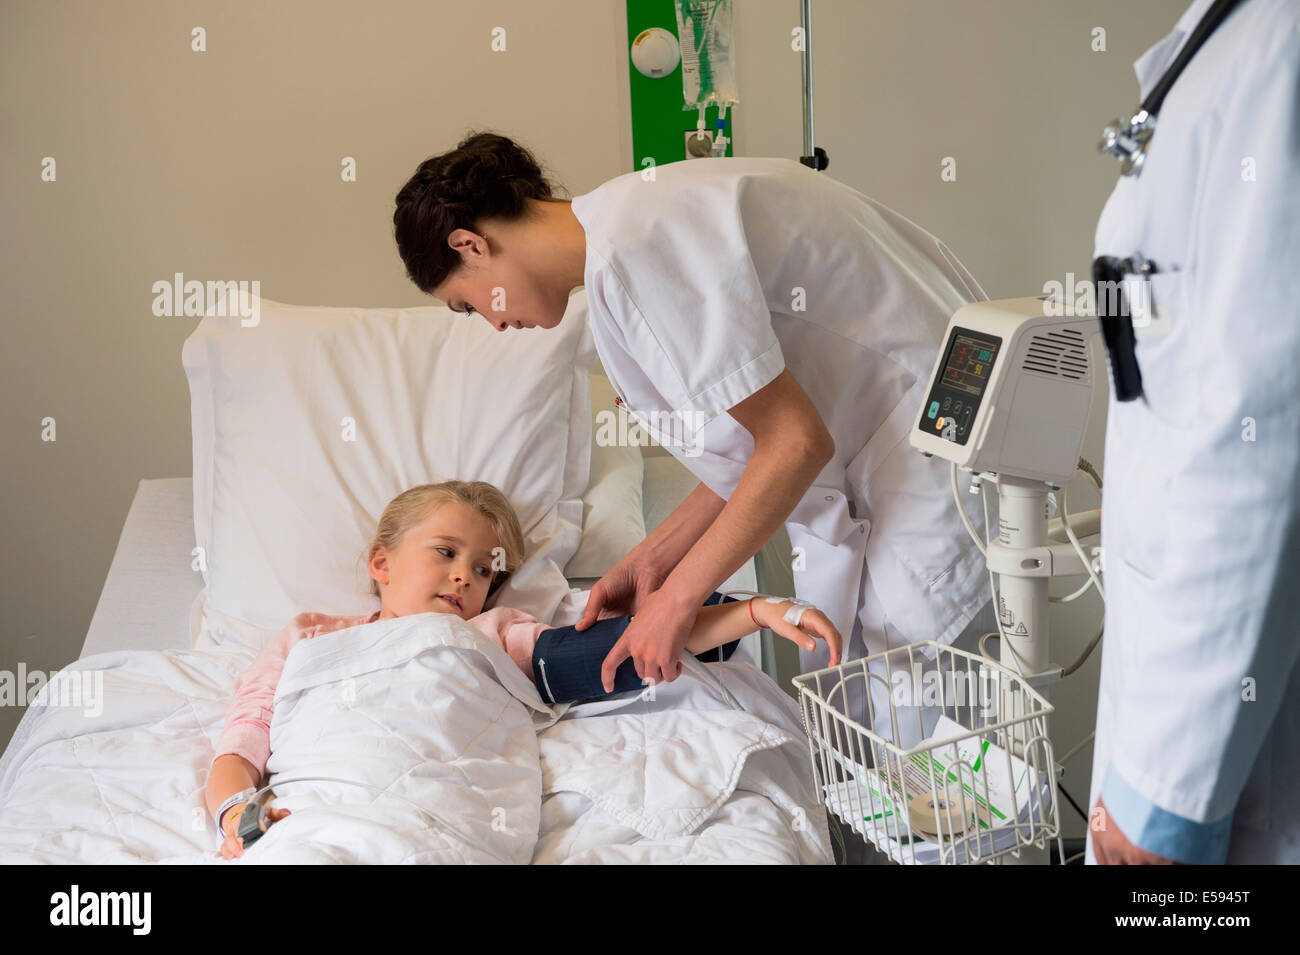 Medical attendants examining blood pressure of a girl patient in hospital bed - Stock Image